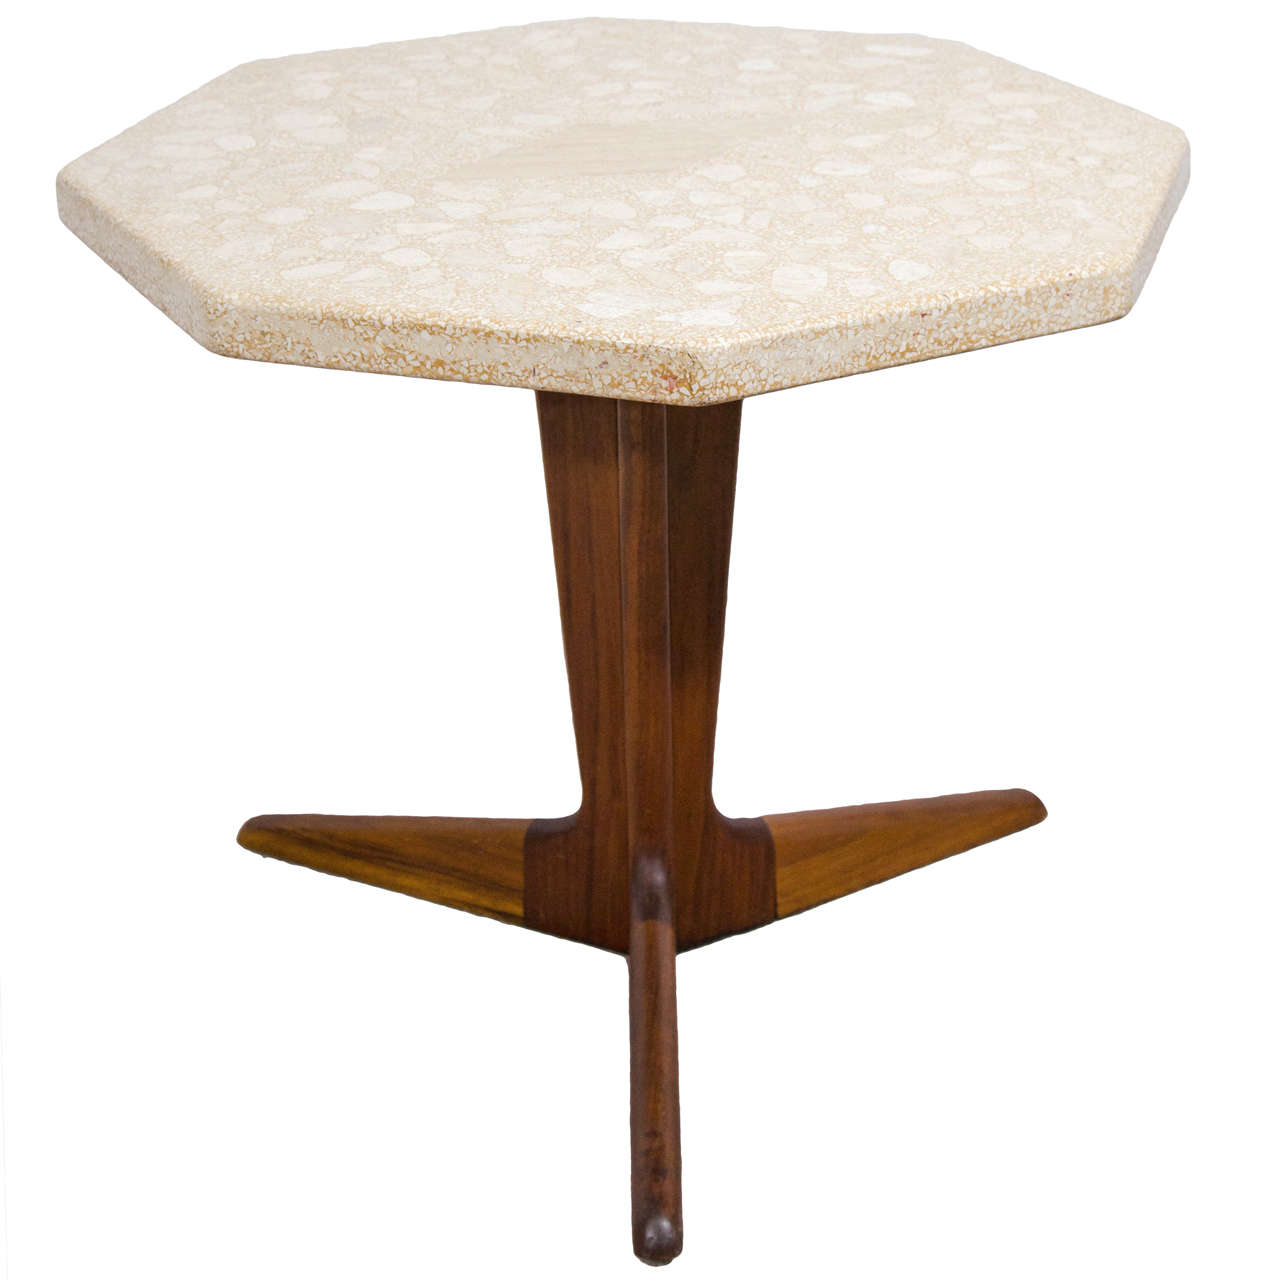 1960s terrazzo top octagonal table on rosewood tripod base for sale at 1stdibs. Black Bedroom Furniture Sets. Home Design Ideas